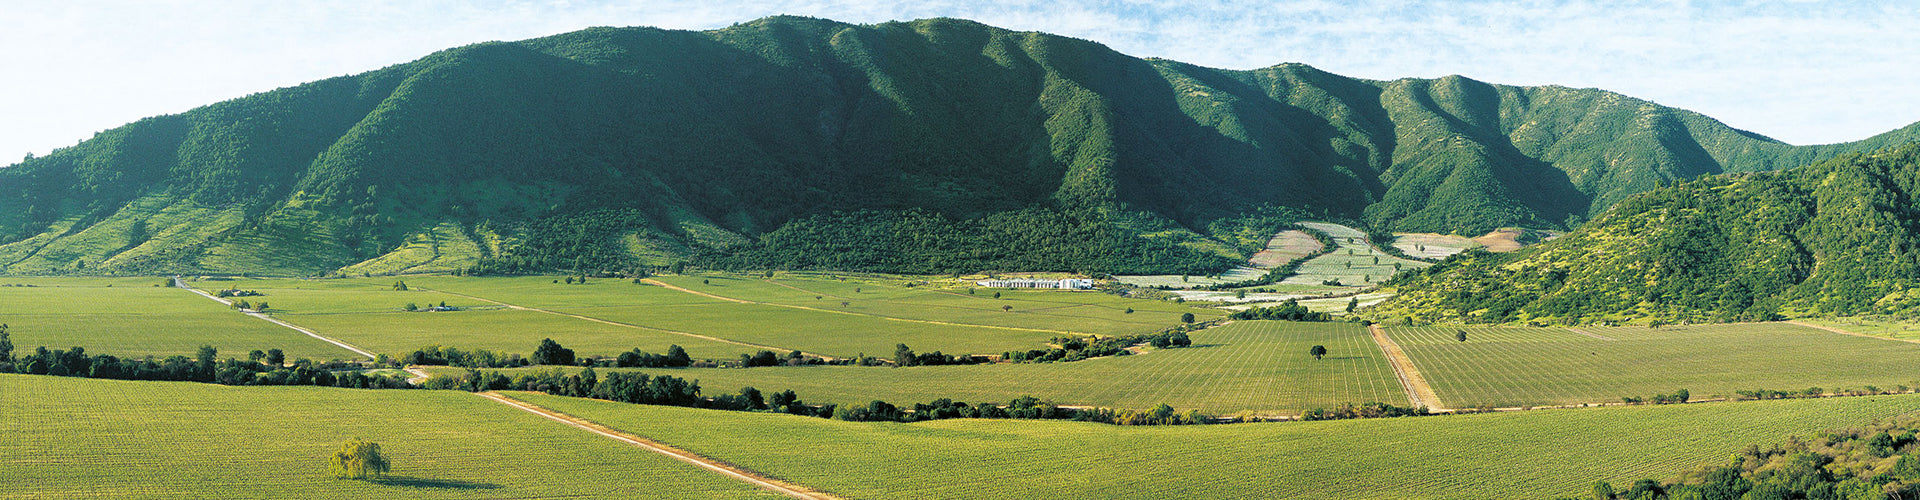 Caliterra Winery and Vineyards in Colchagua Valley, Chile